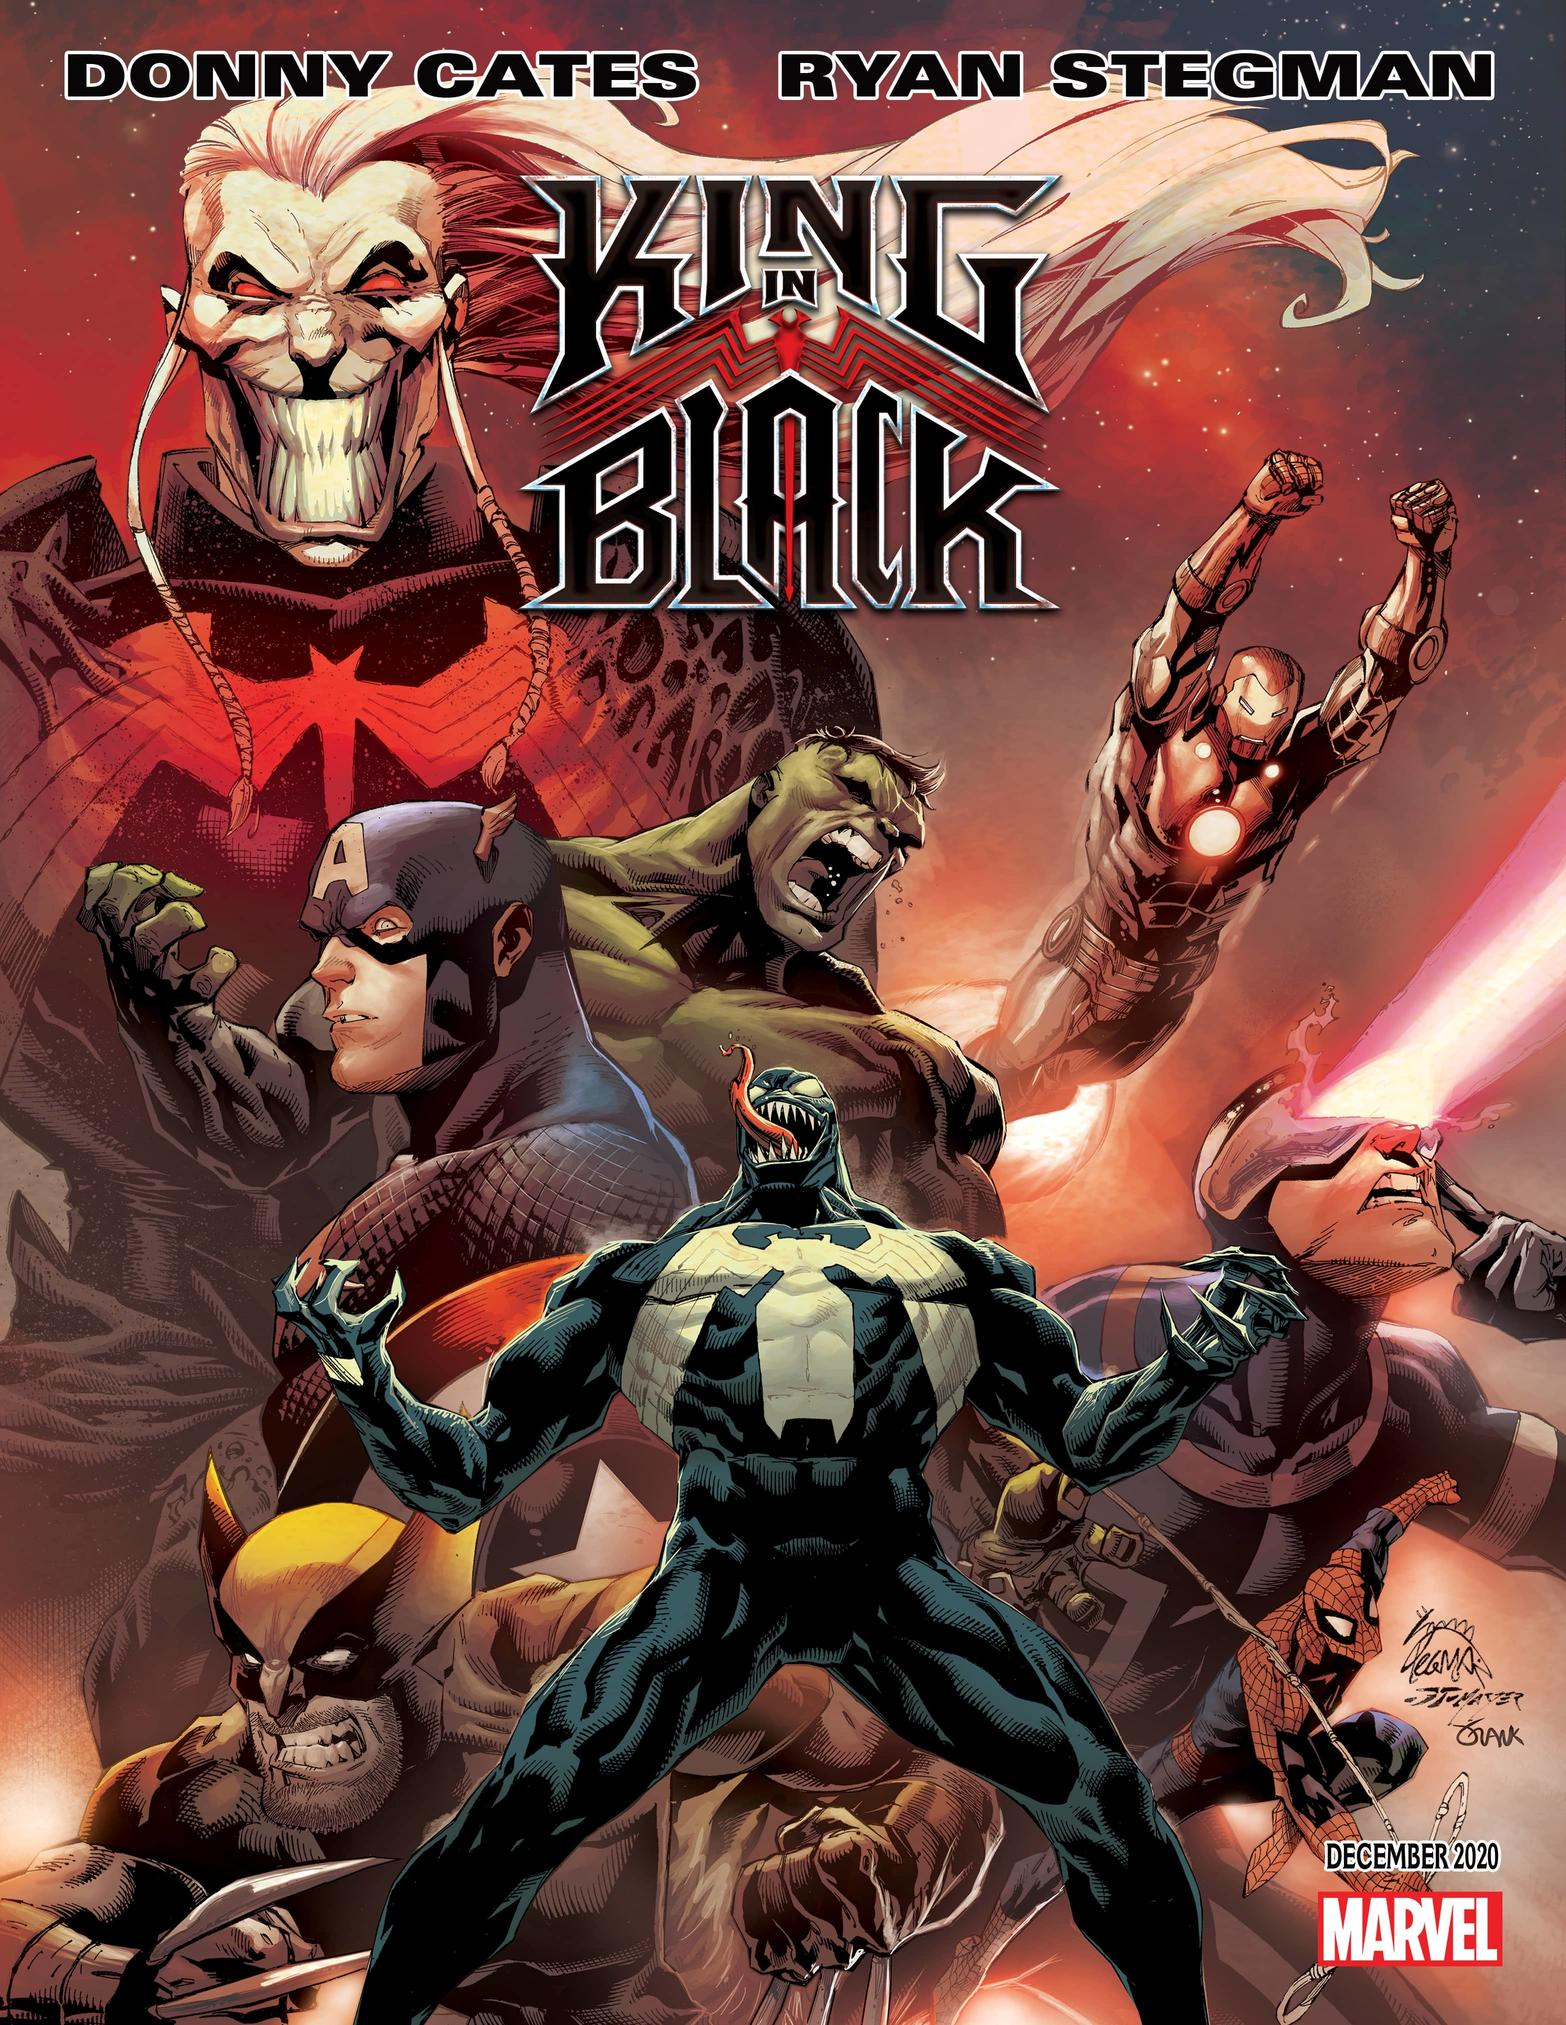 KING IN BLACK #1 WRITTEN BY DONNY CATES, ART BY RYAN STEGMAN